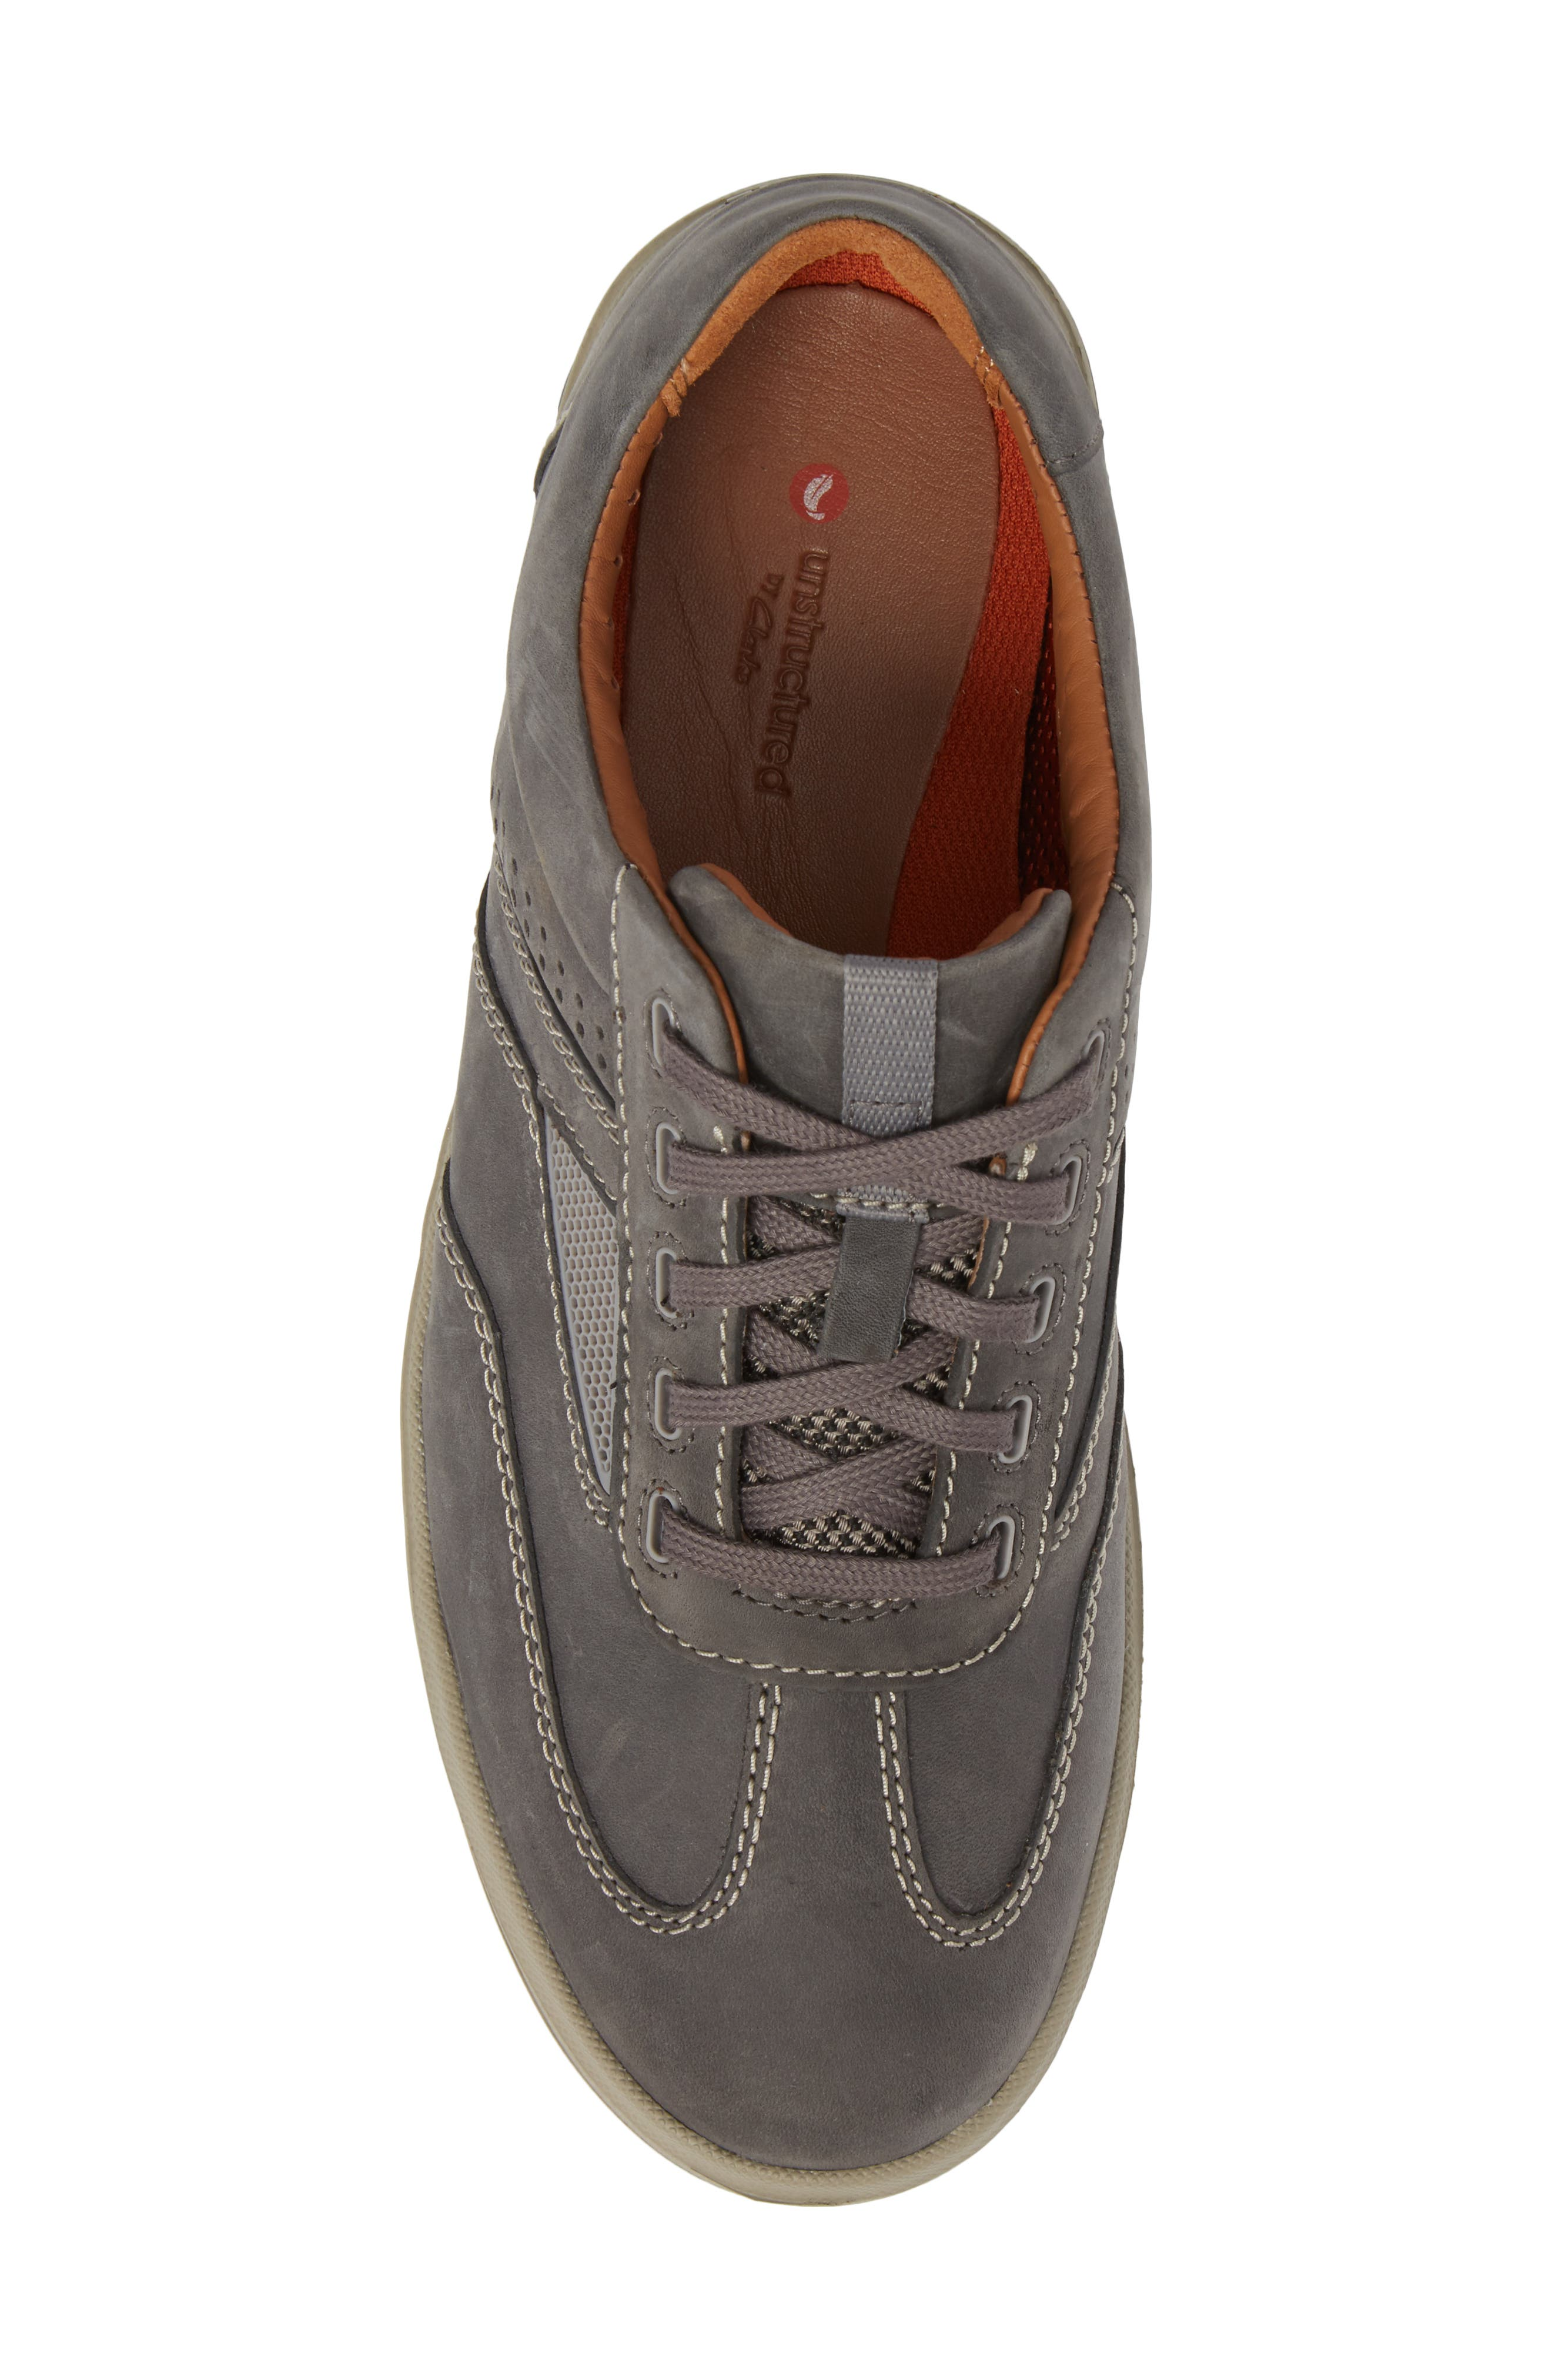 Unrhombus Low Top Sneaker,                             Alternate thumbnail 5, color,                             Dark Grey Leather